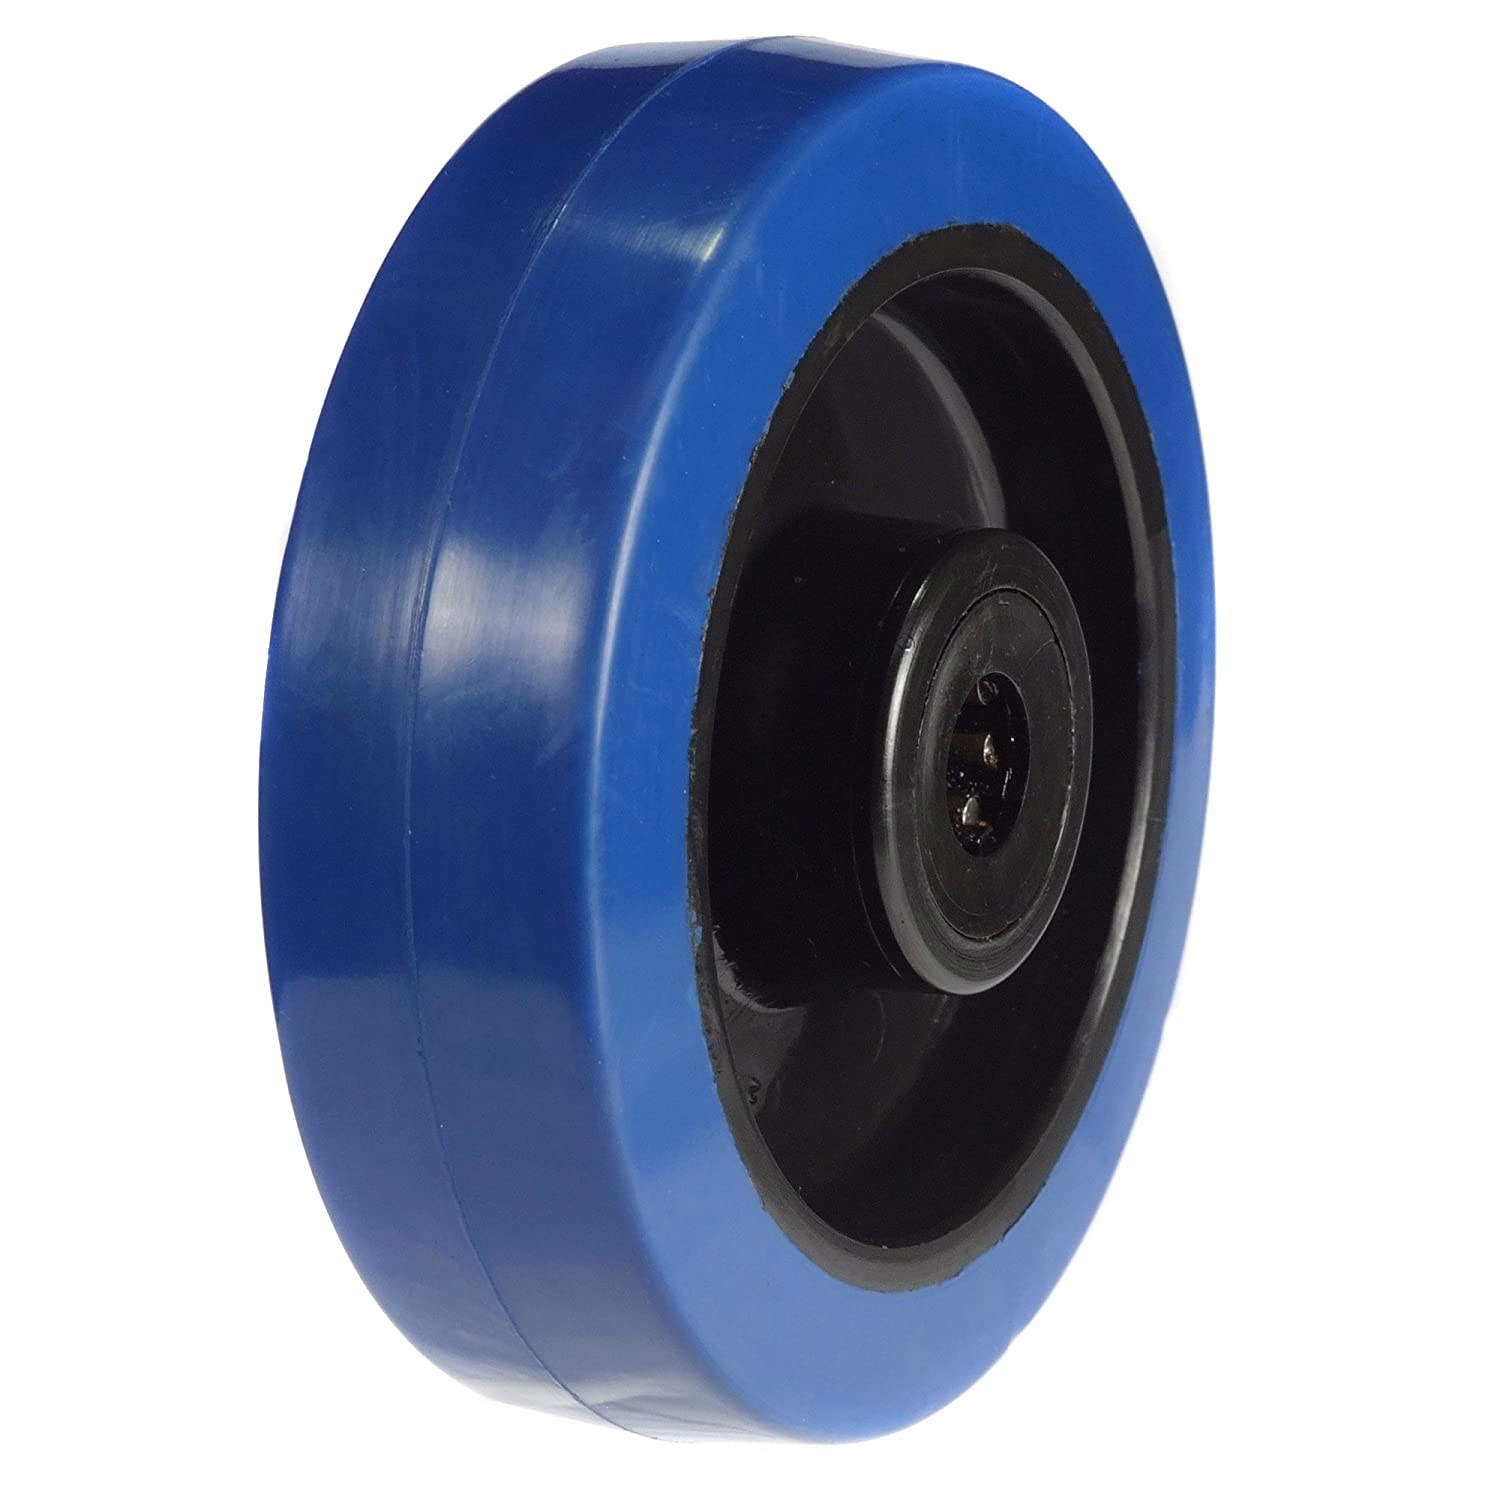 125mm Wheel with Blue Elastic rubber on Nylon centre 250kg Capacity Atlas Handling Uk Ltd